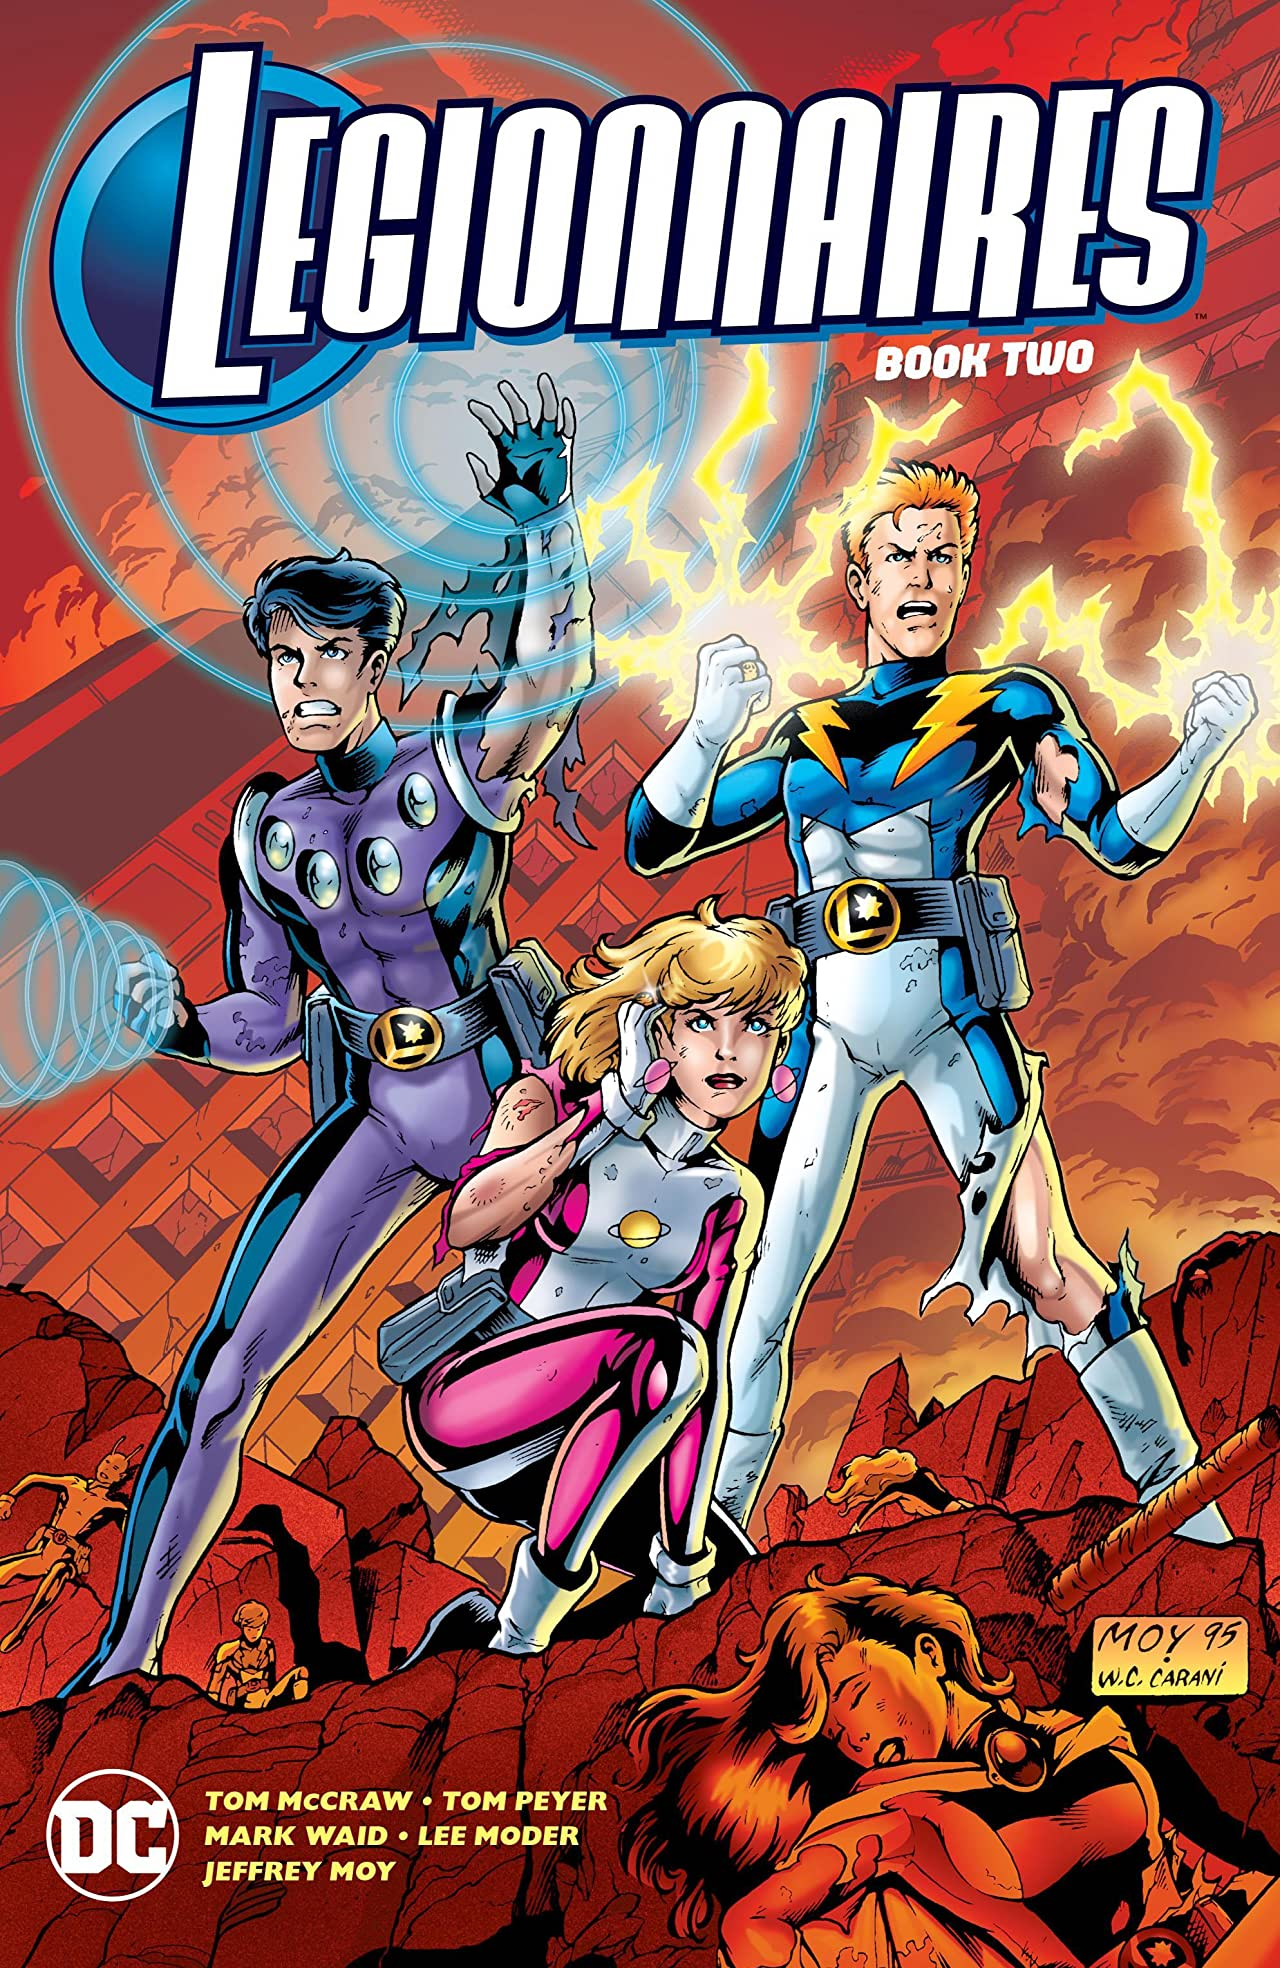 Legionnaires: Book Two